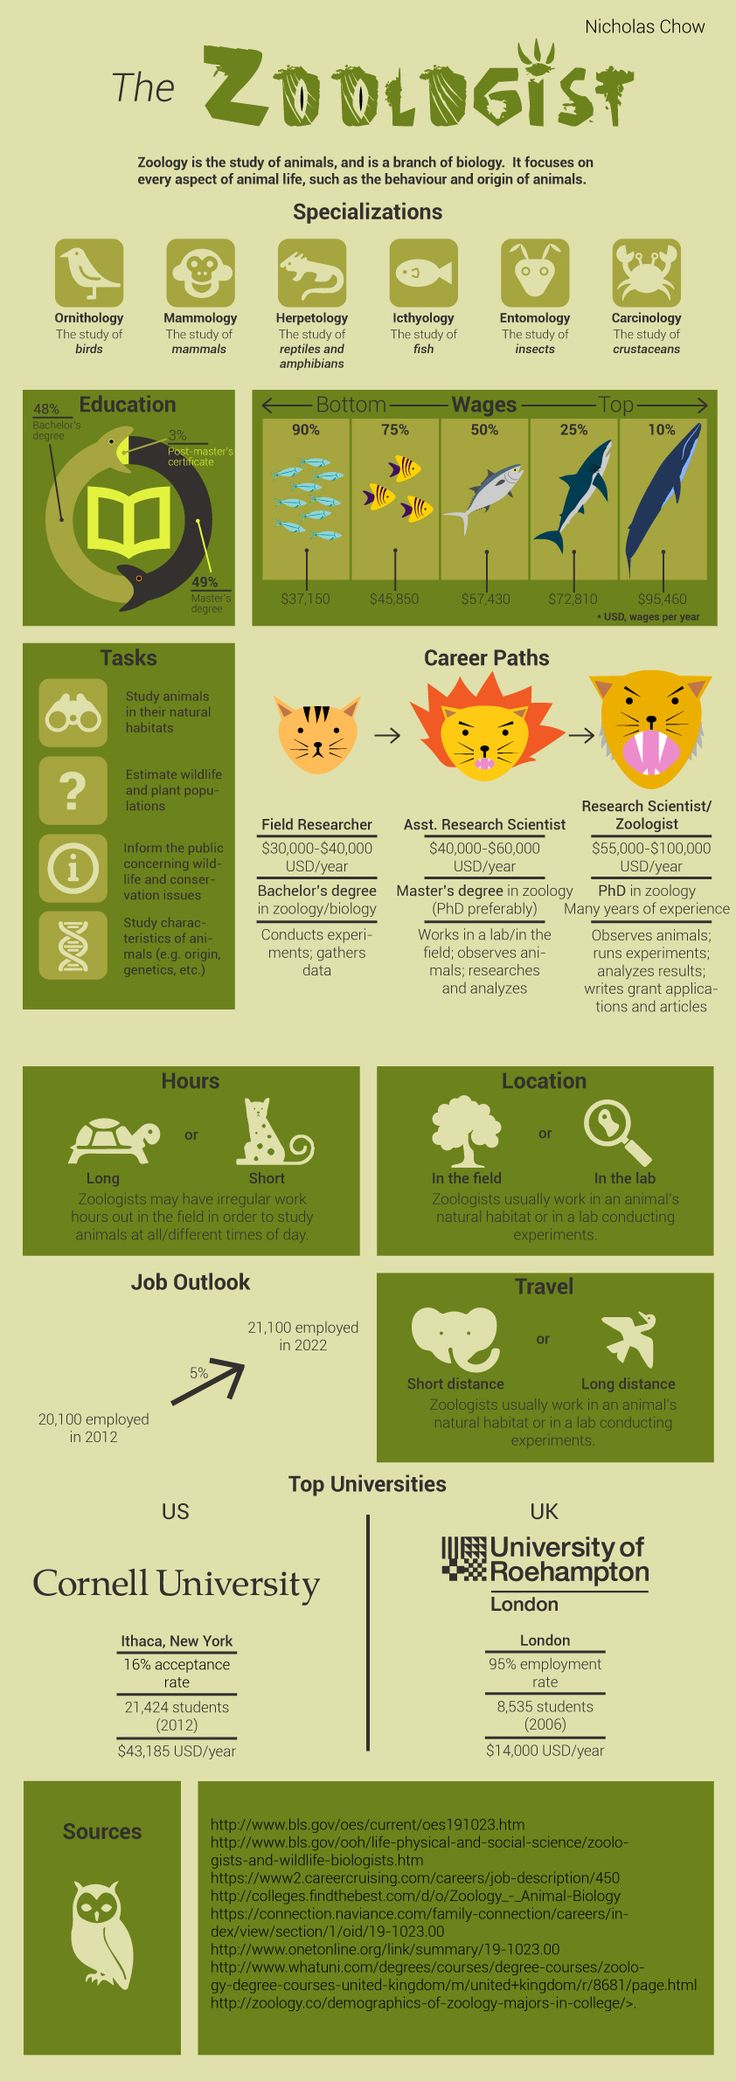 Zoology poster design - Info On A Career In Zoology